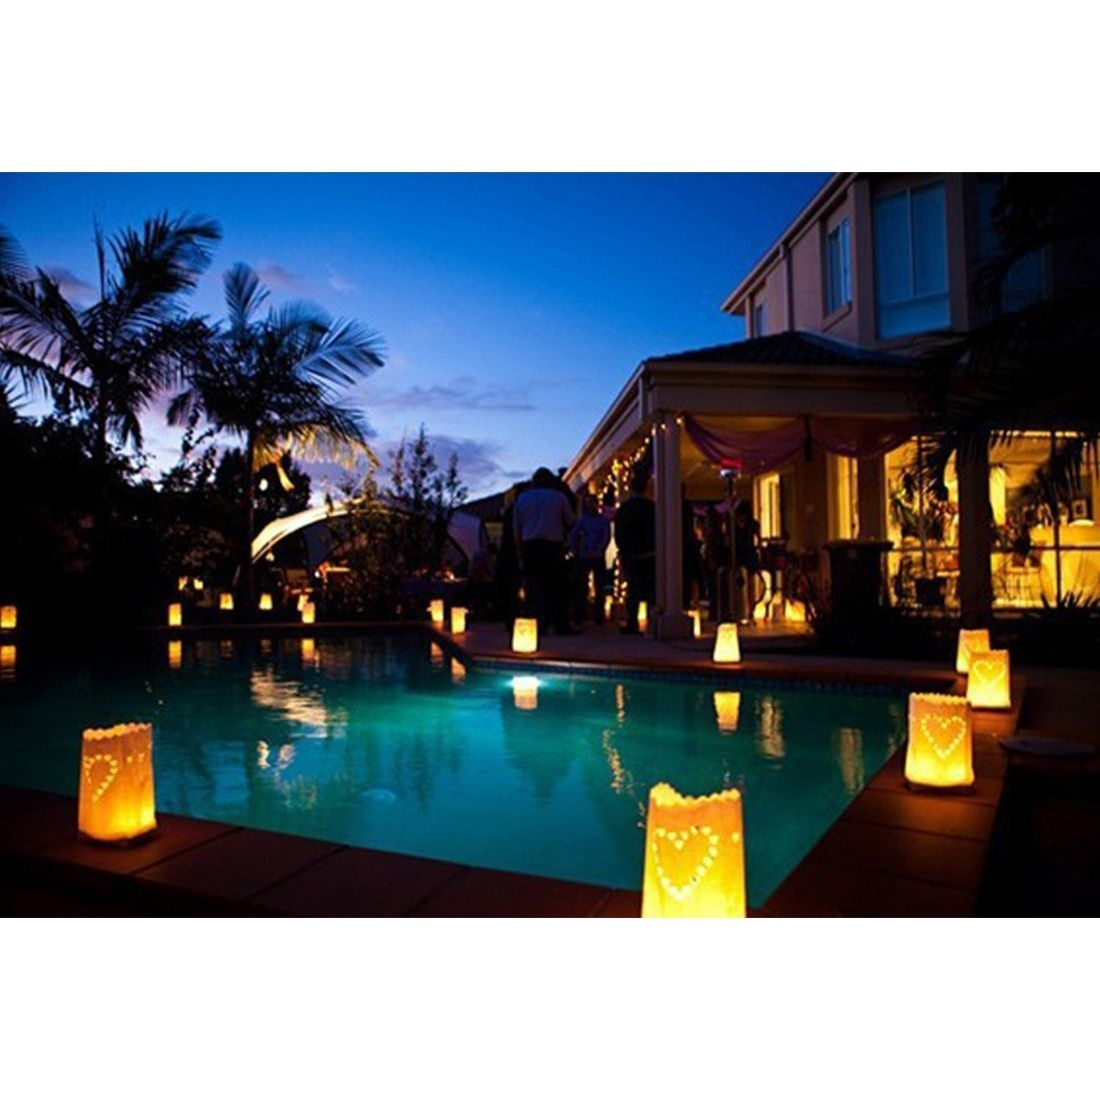 30 Pcs Tea Light Holder Luminous Paper Lantern Candle Bag For Party For Outdoor Pool Lanterns (Photo 3 of 20)